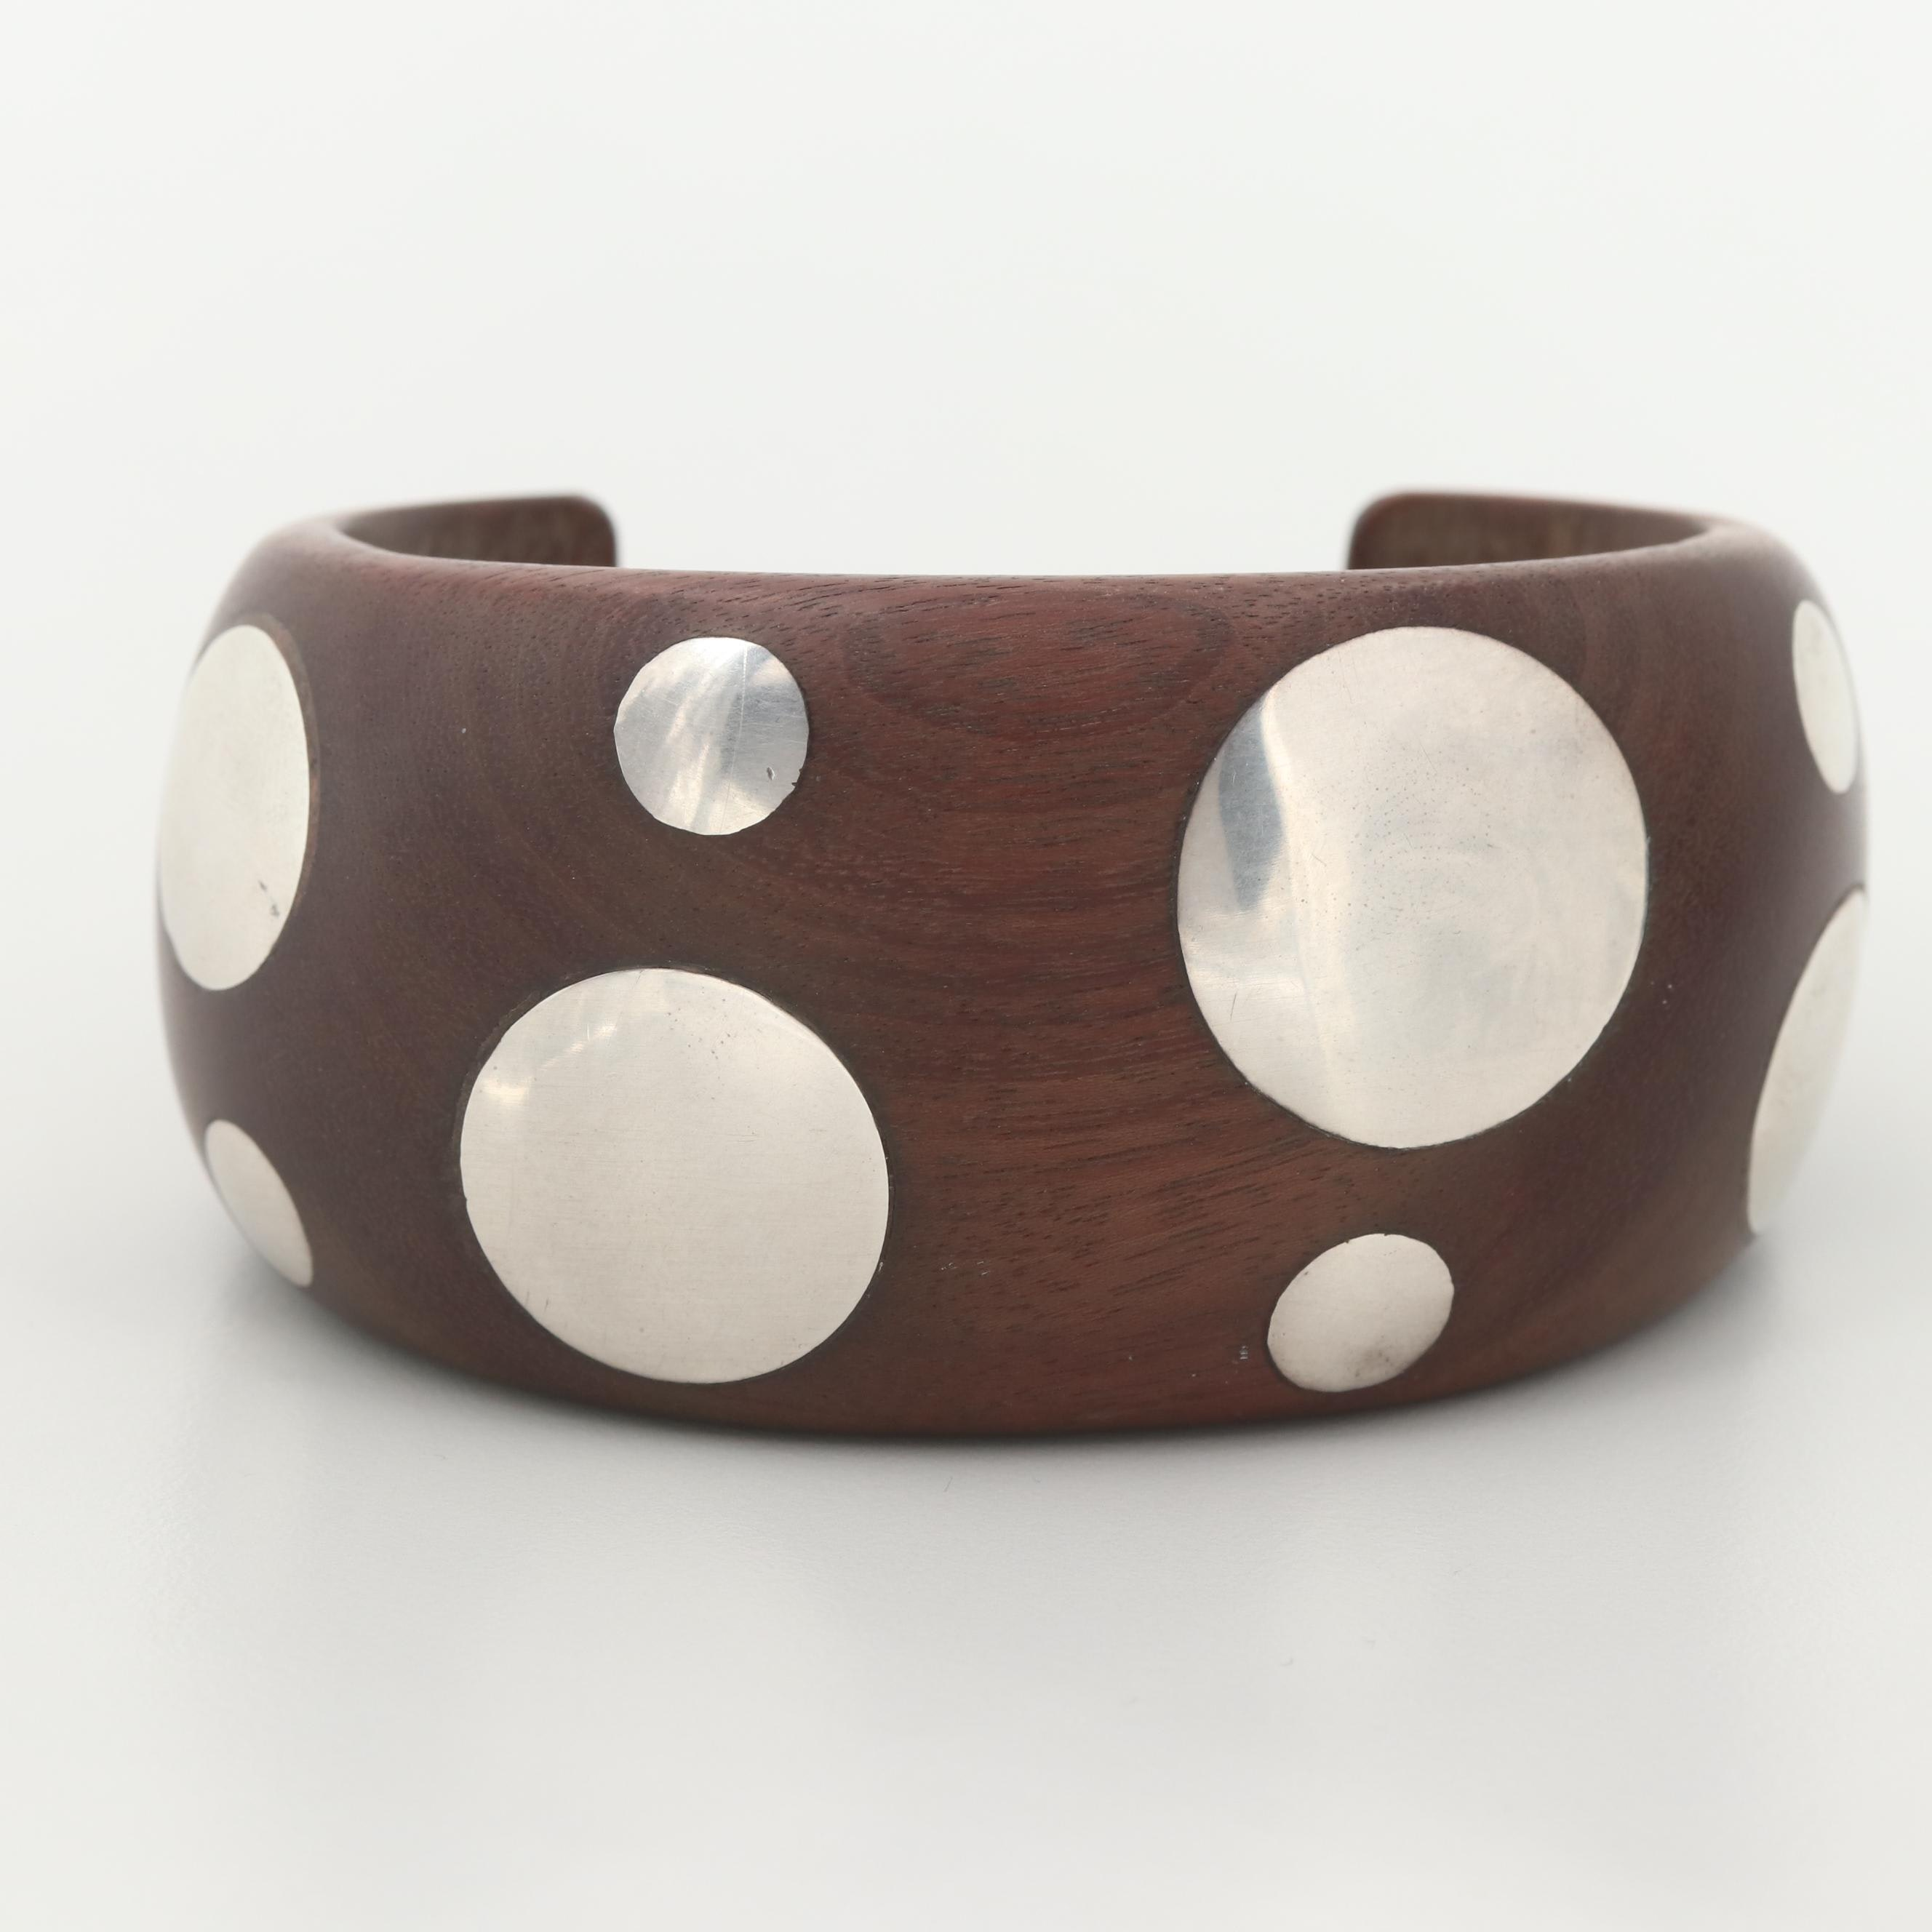 William Spratling Wood Cuff Bracelet with Sterling Silver Polka Dots